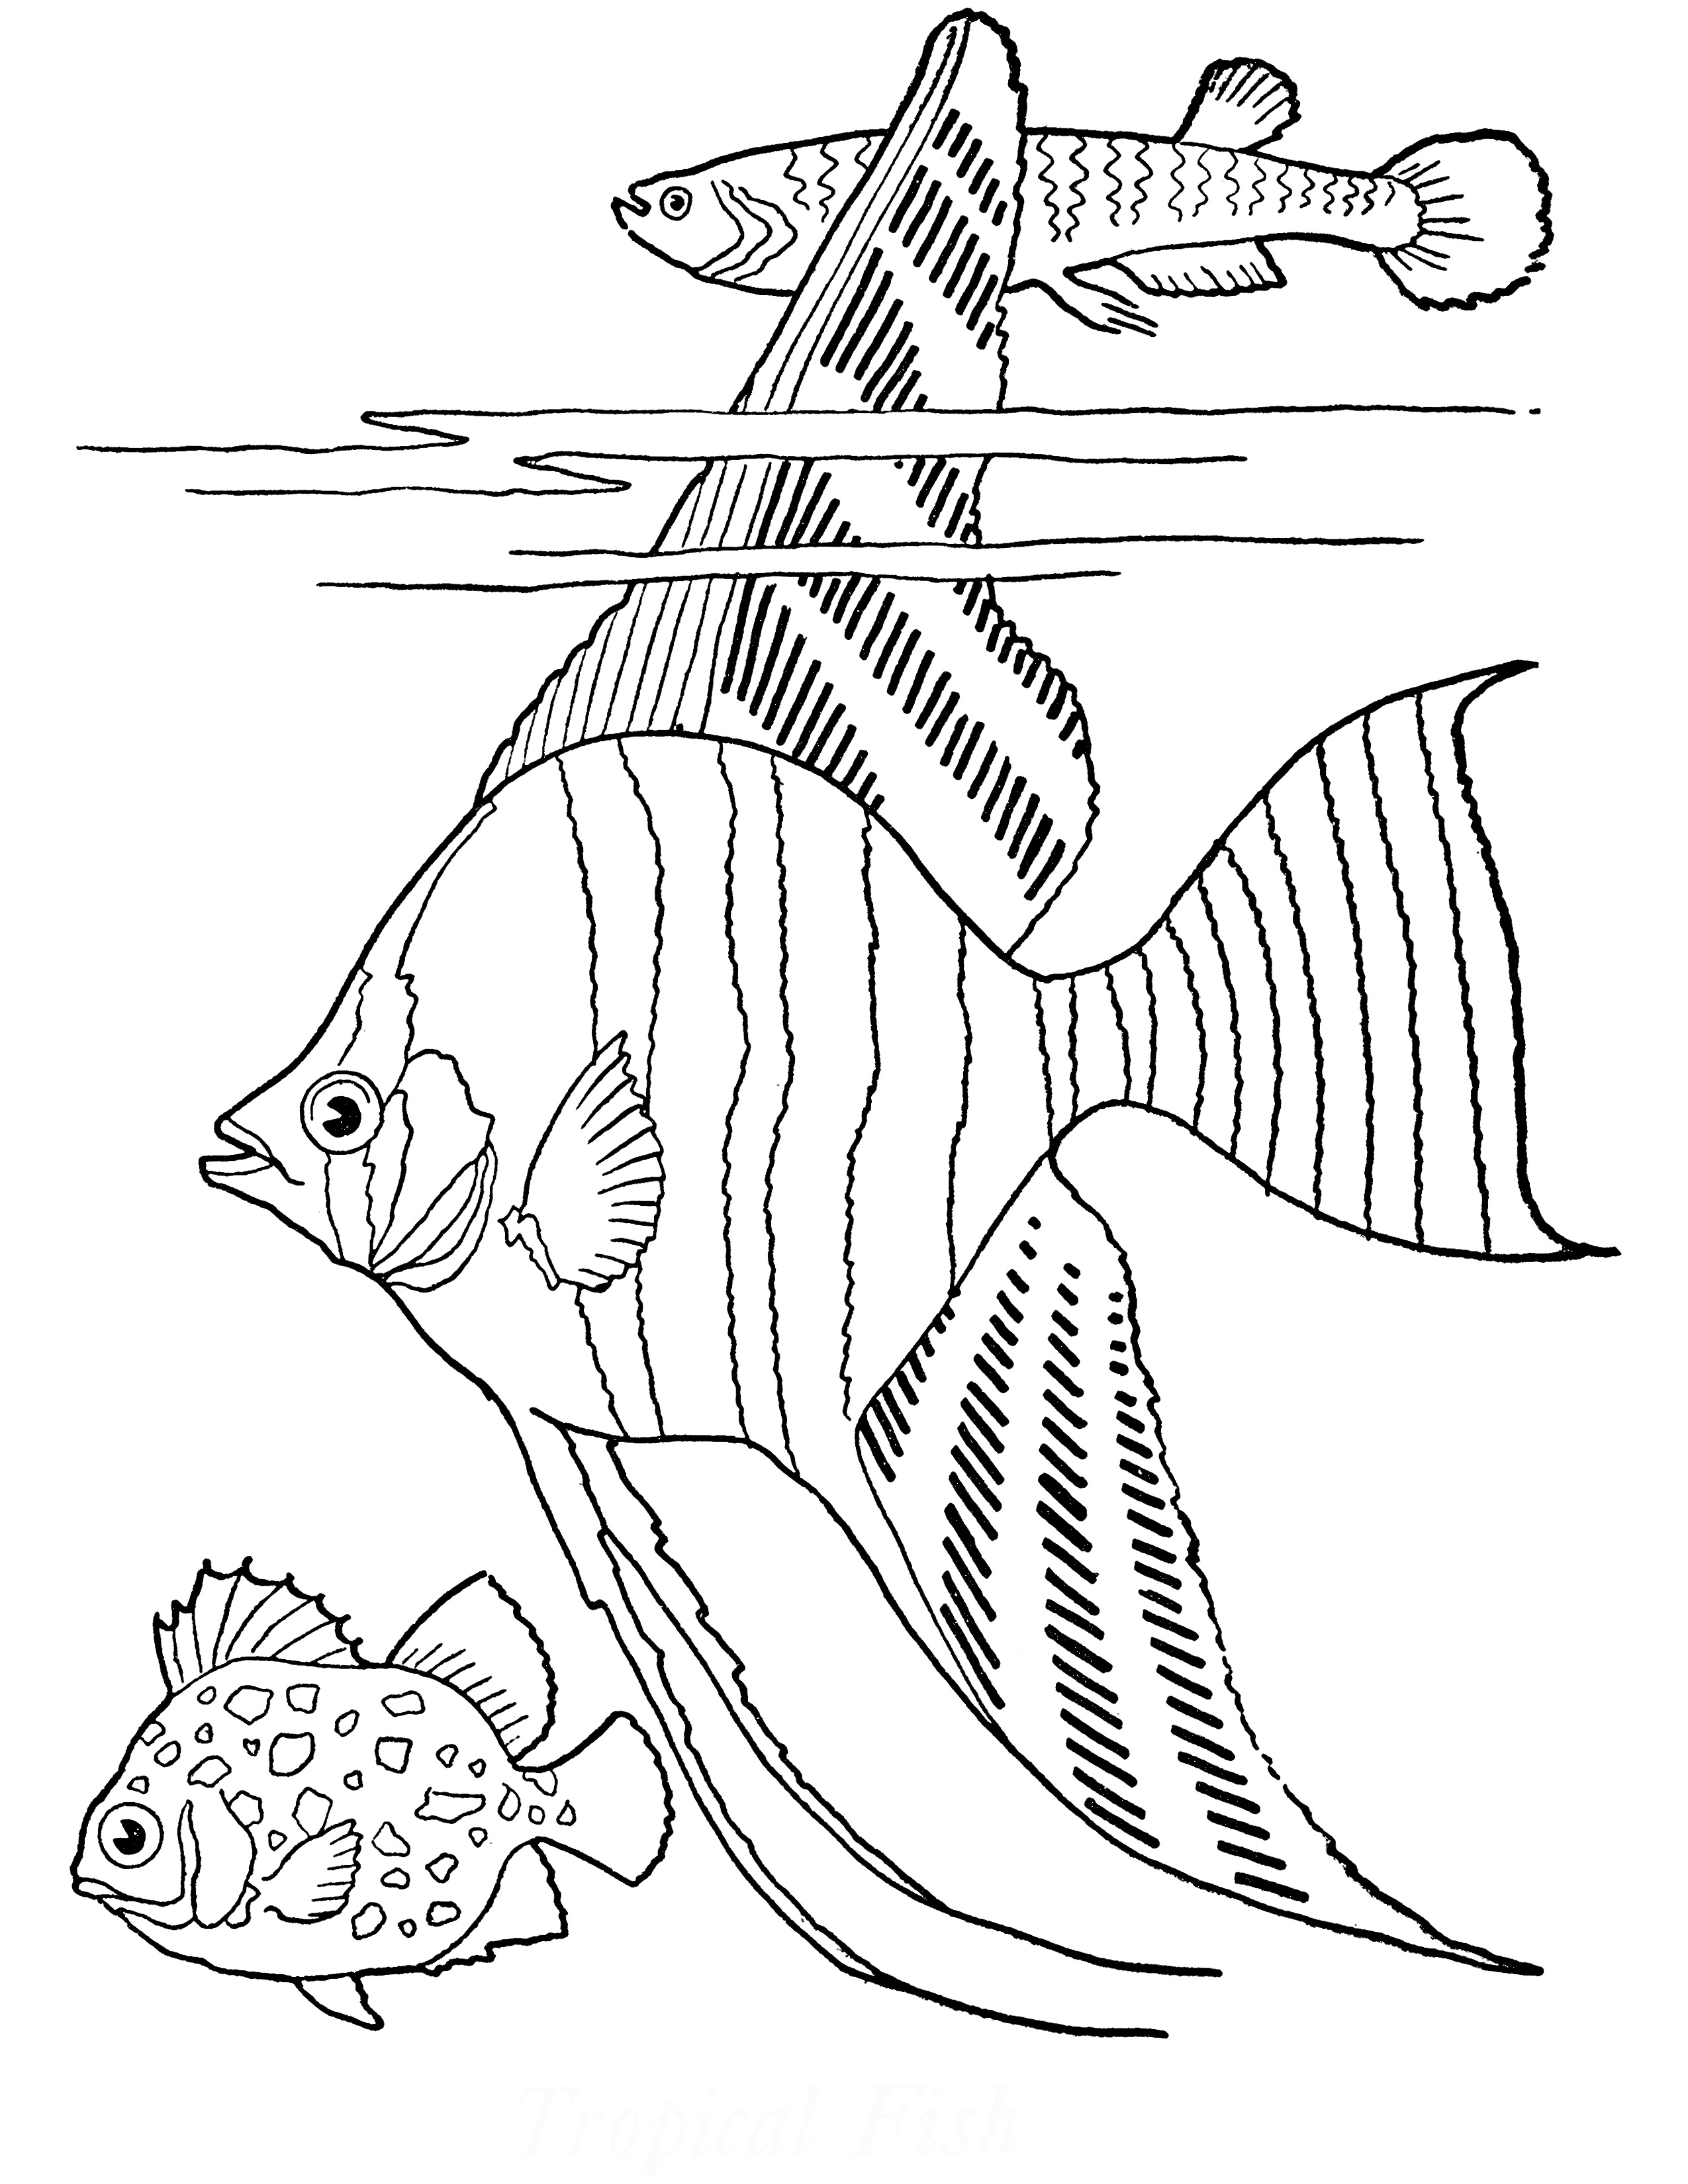 Free Printable Adult Coloring Page - Tropical Fish! - The Graphics Fairy - Free Printable Fish Coloring Pages